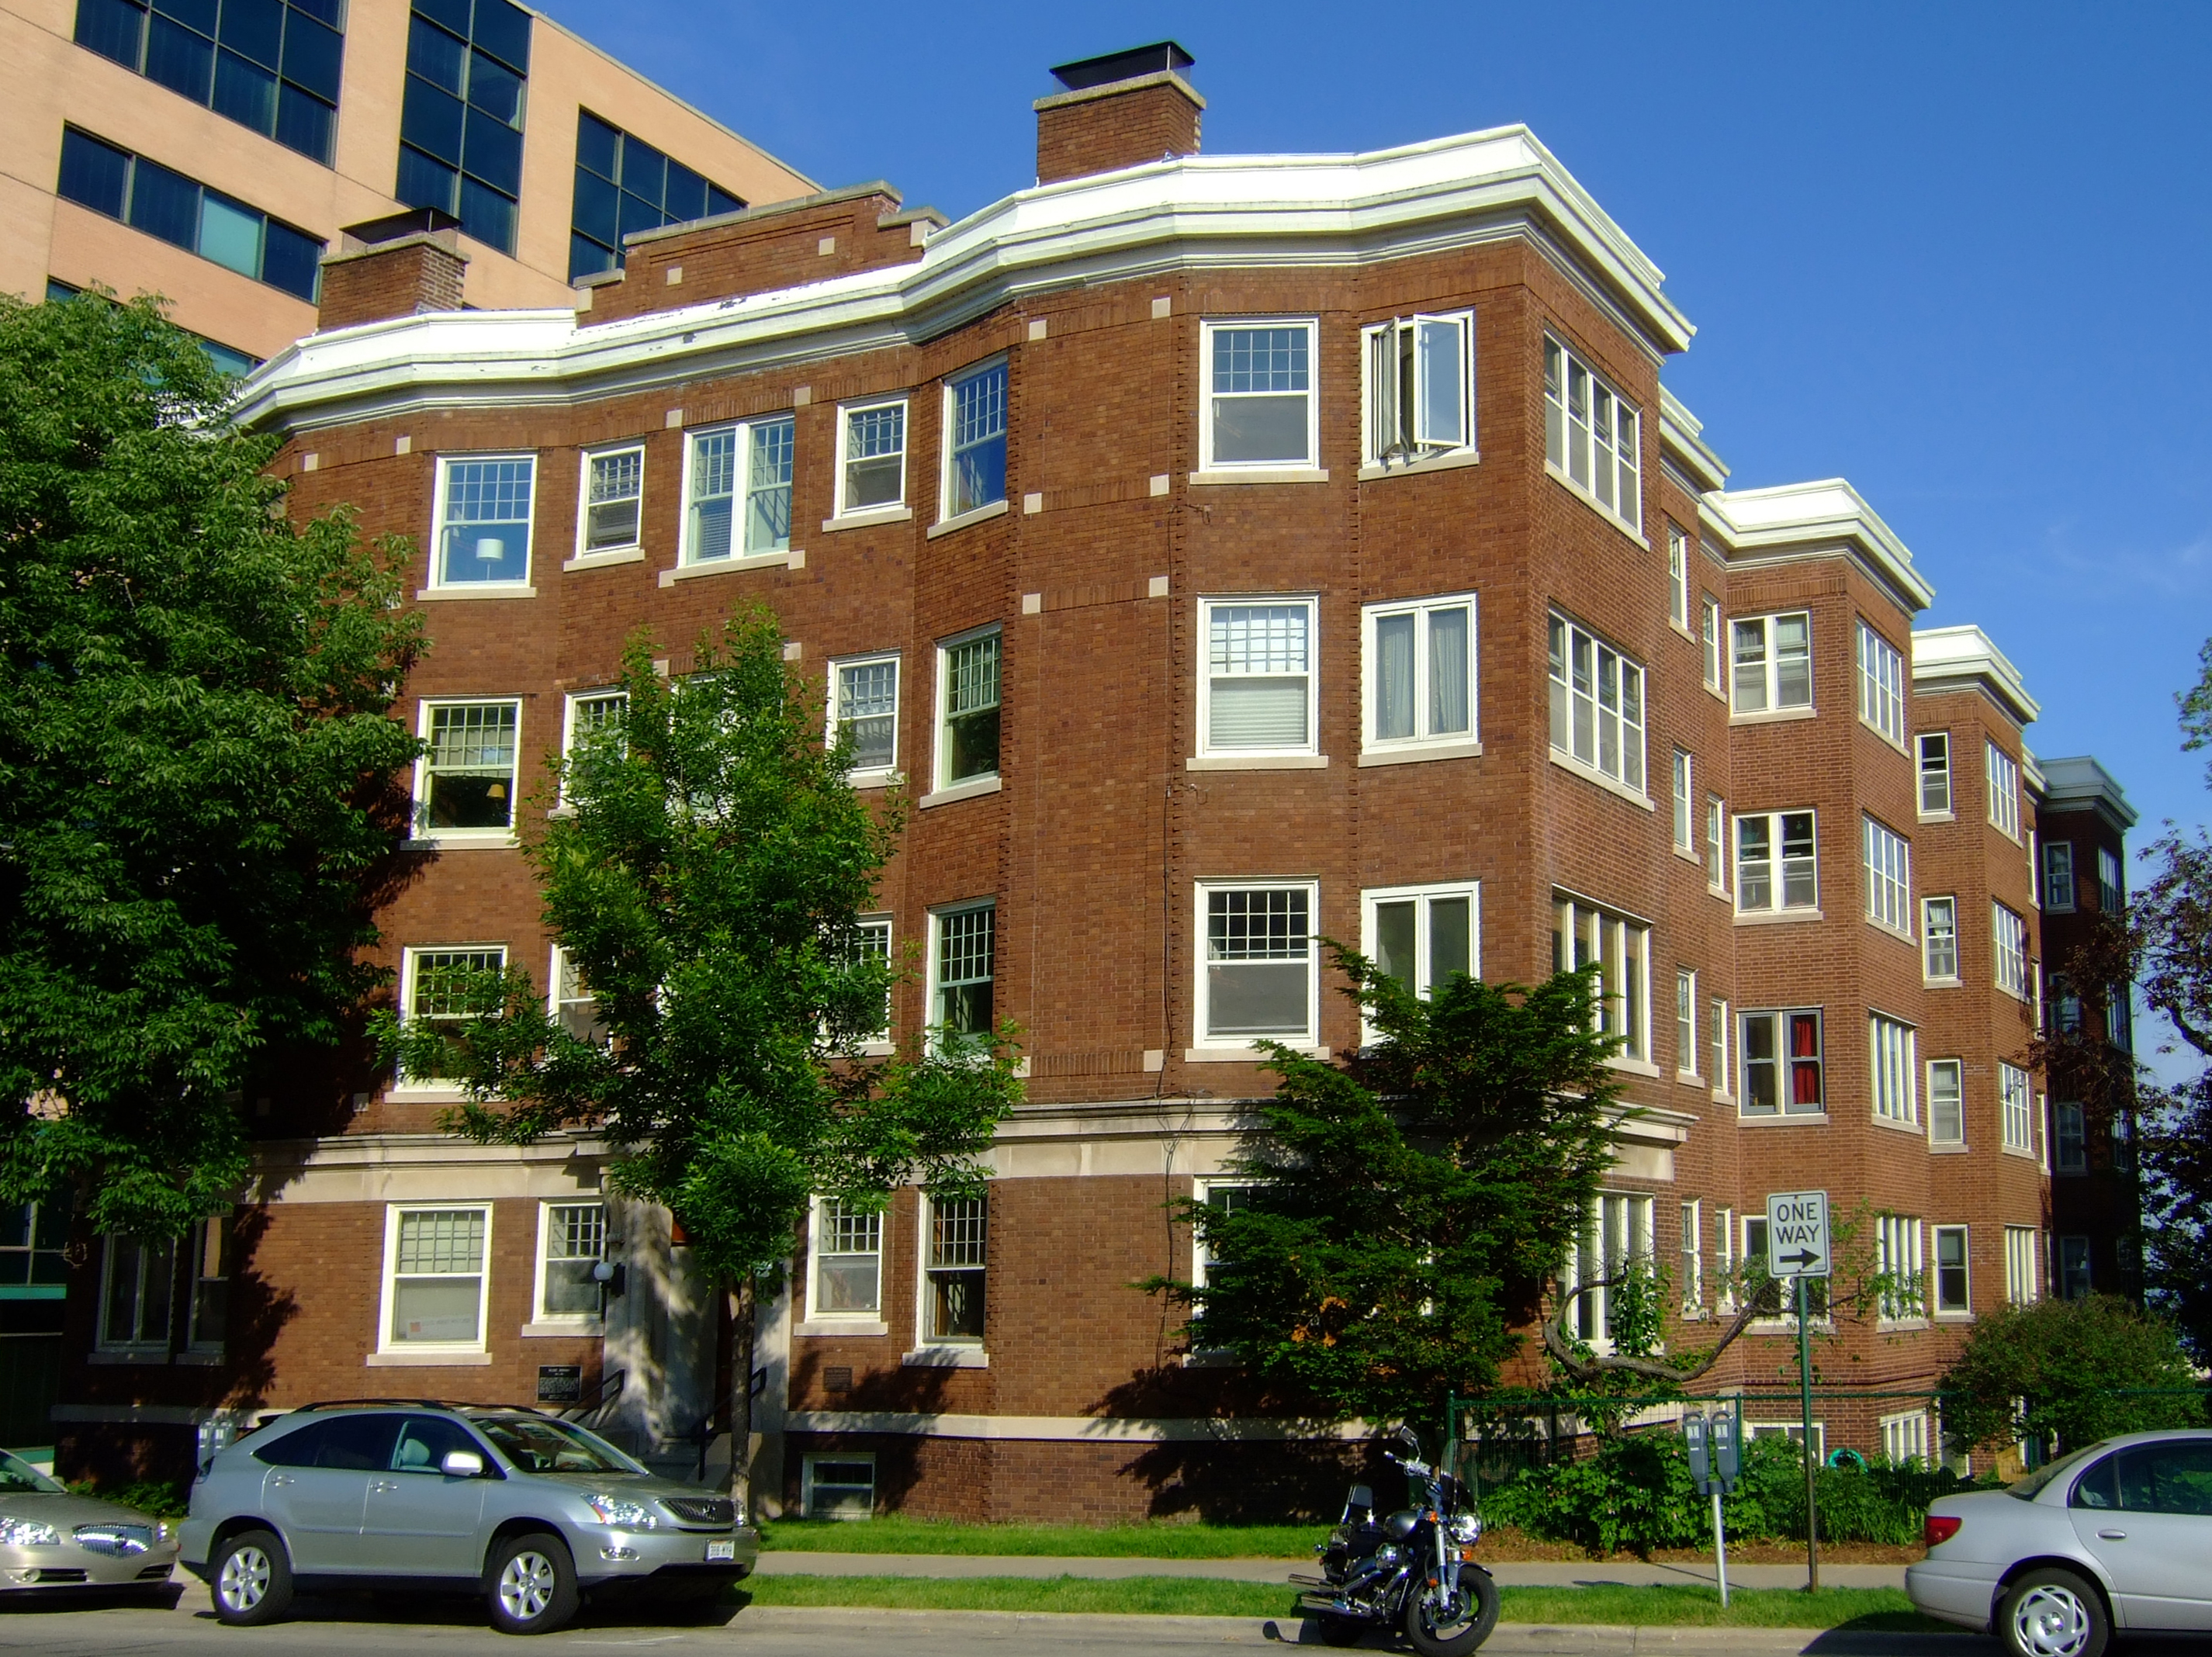 File:Bellevue Apartment Building